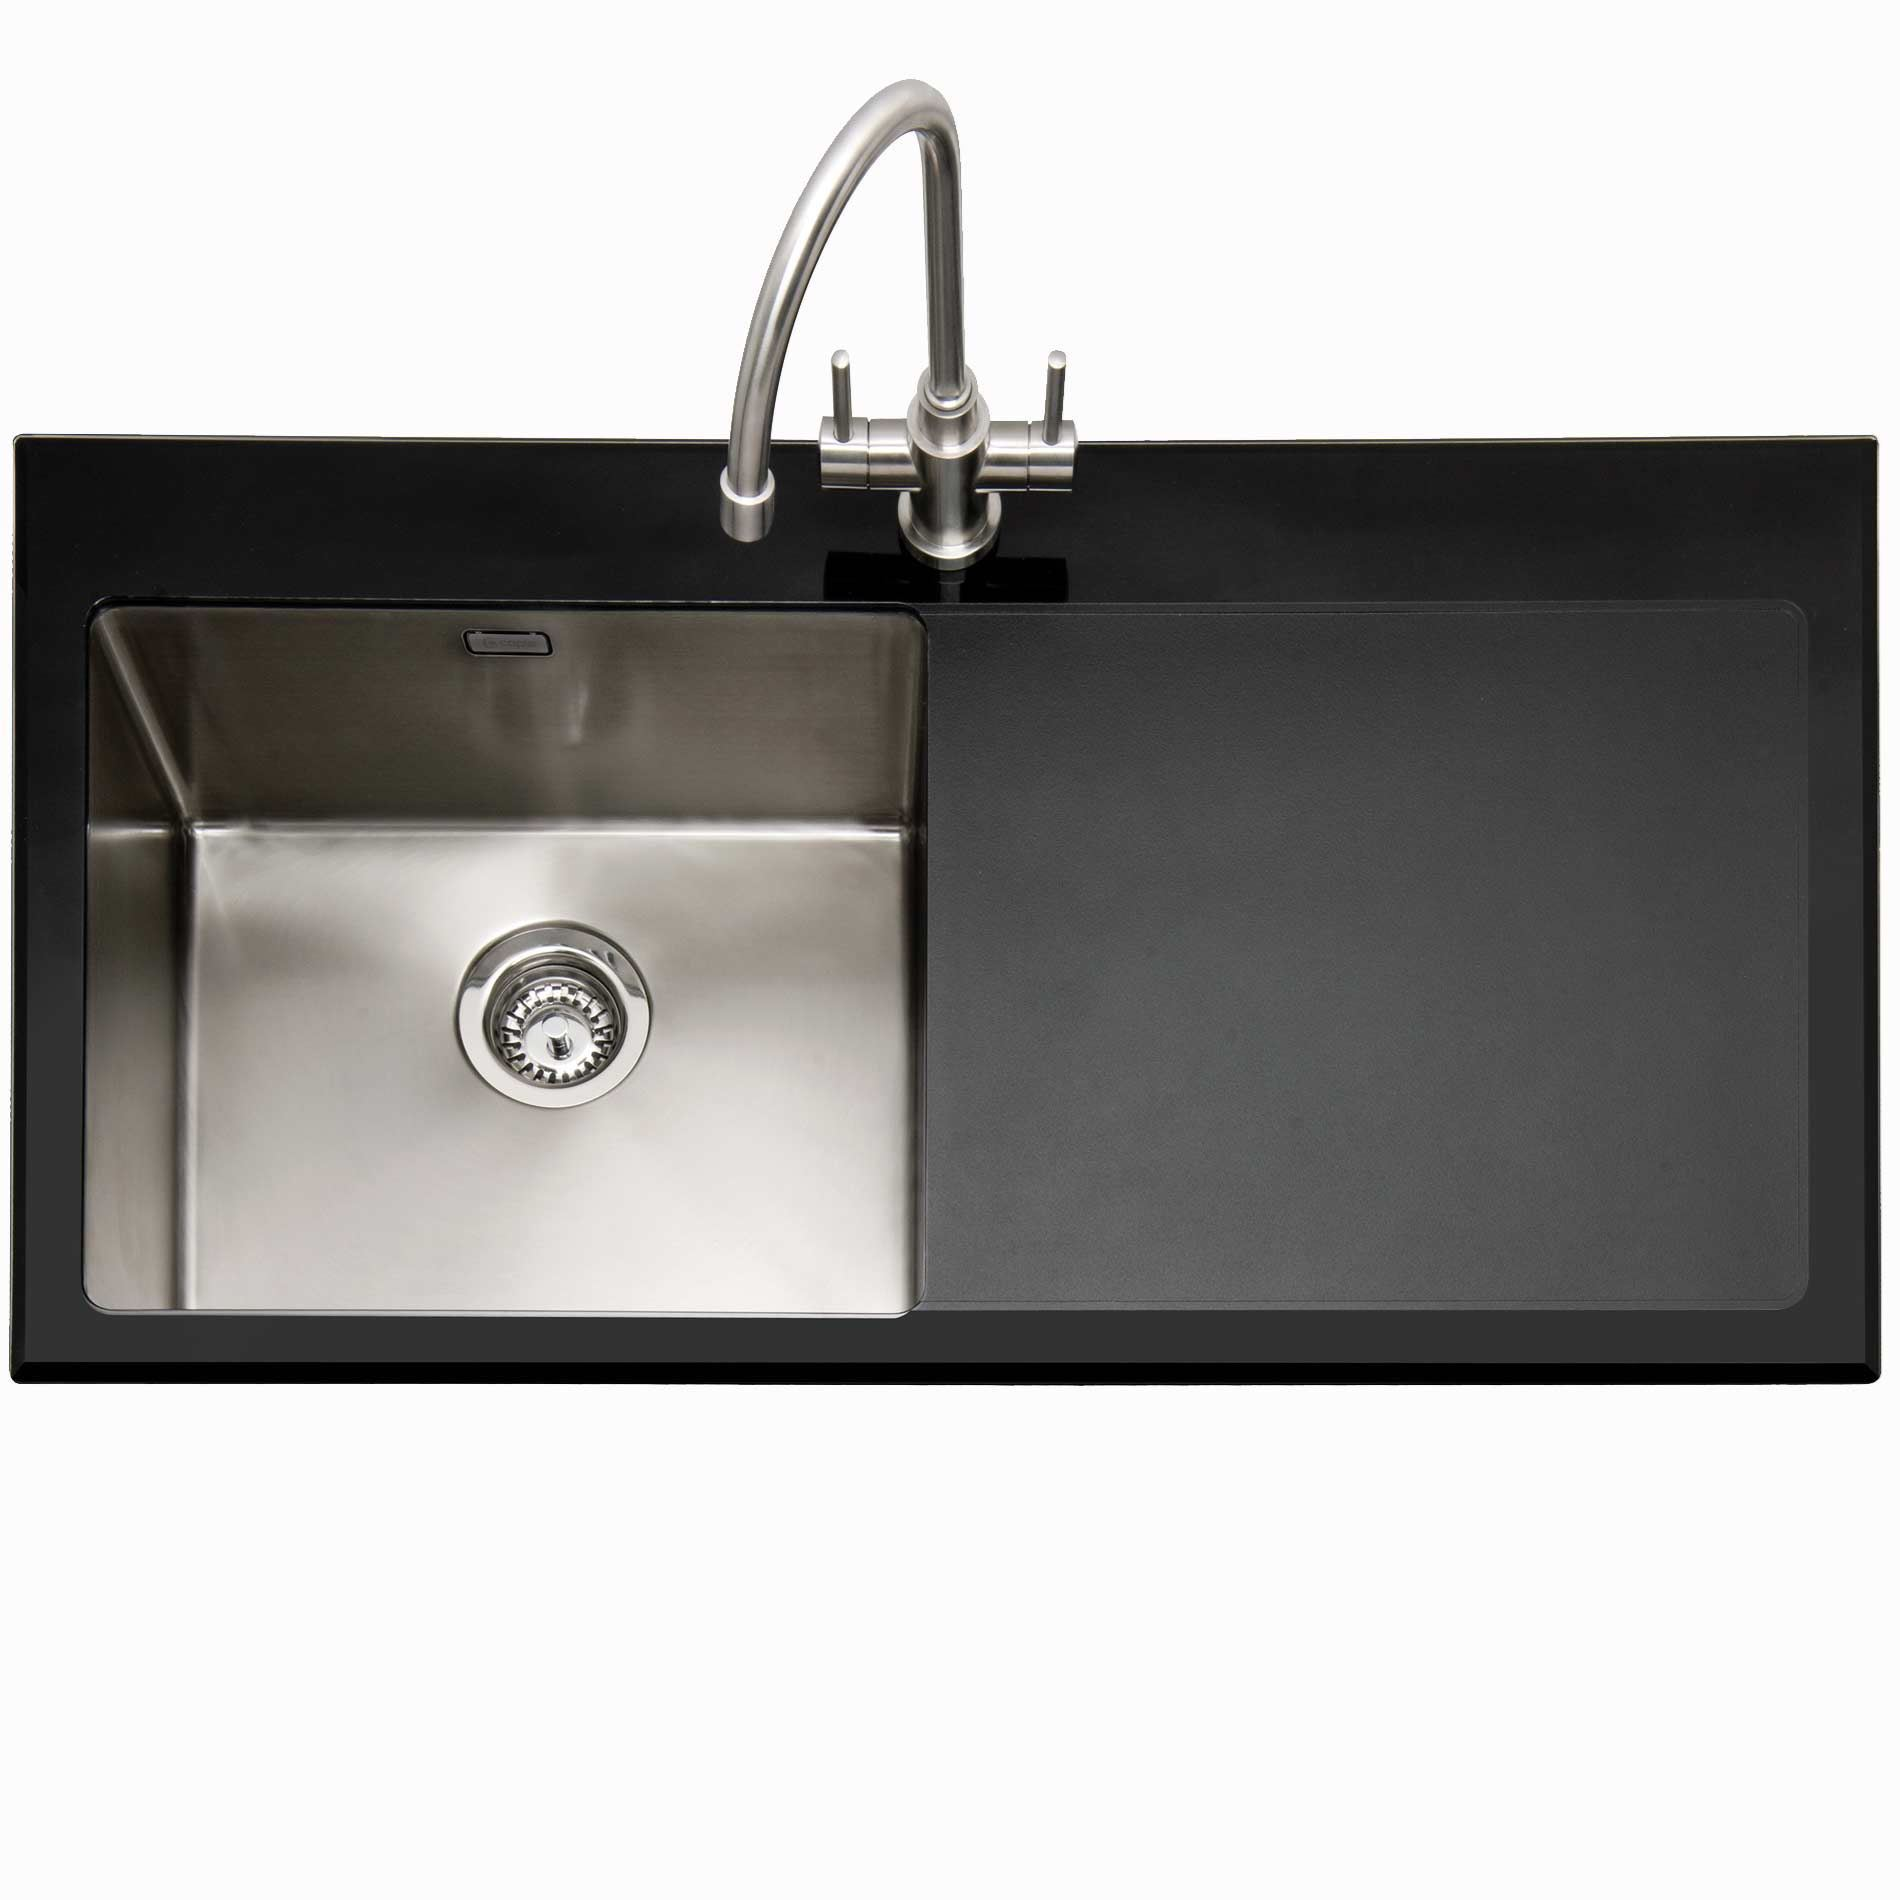 Caple vitrea 100 stainless steel and black glass sink kitchen picture of vitrea 100 stainless steel and black glass sink workwithnaturefo